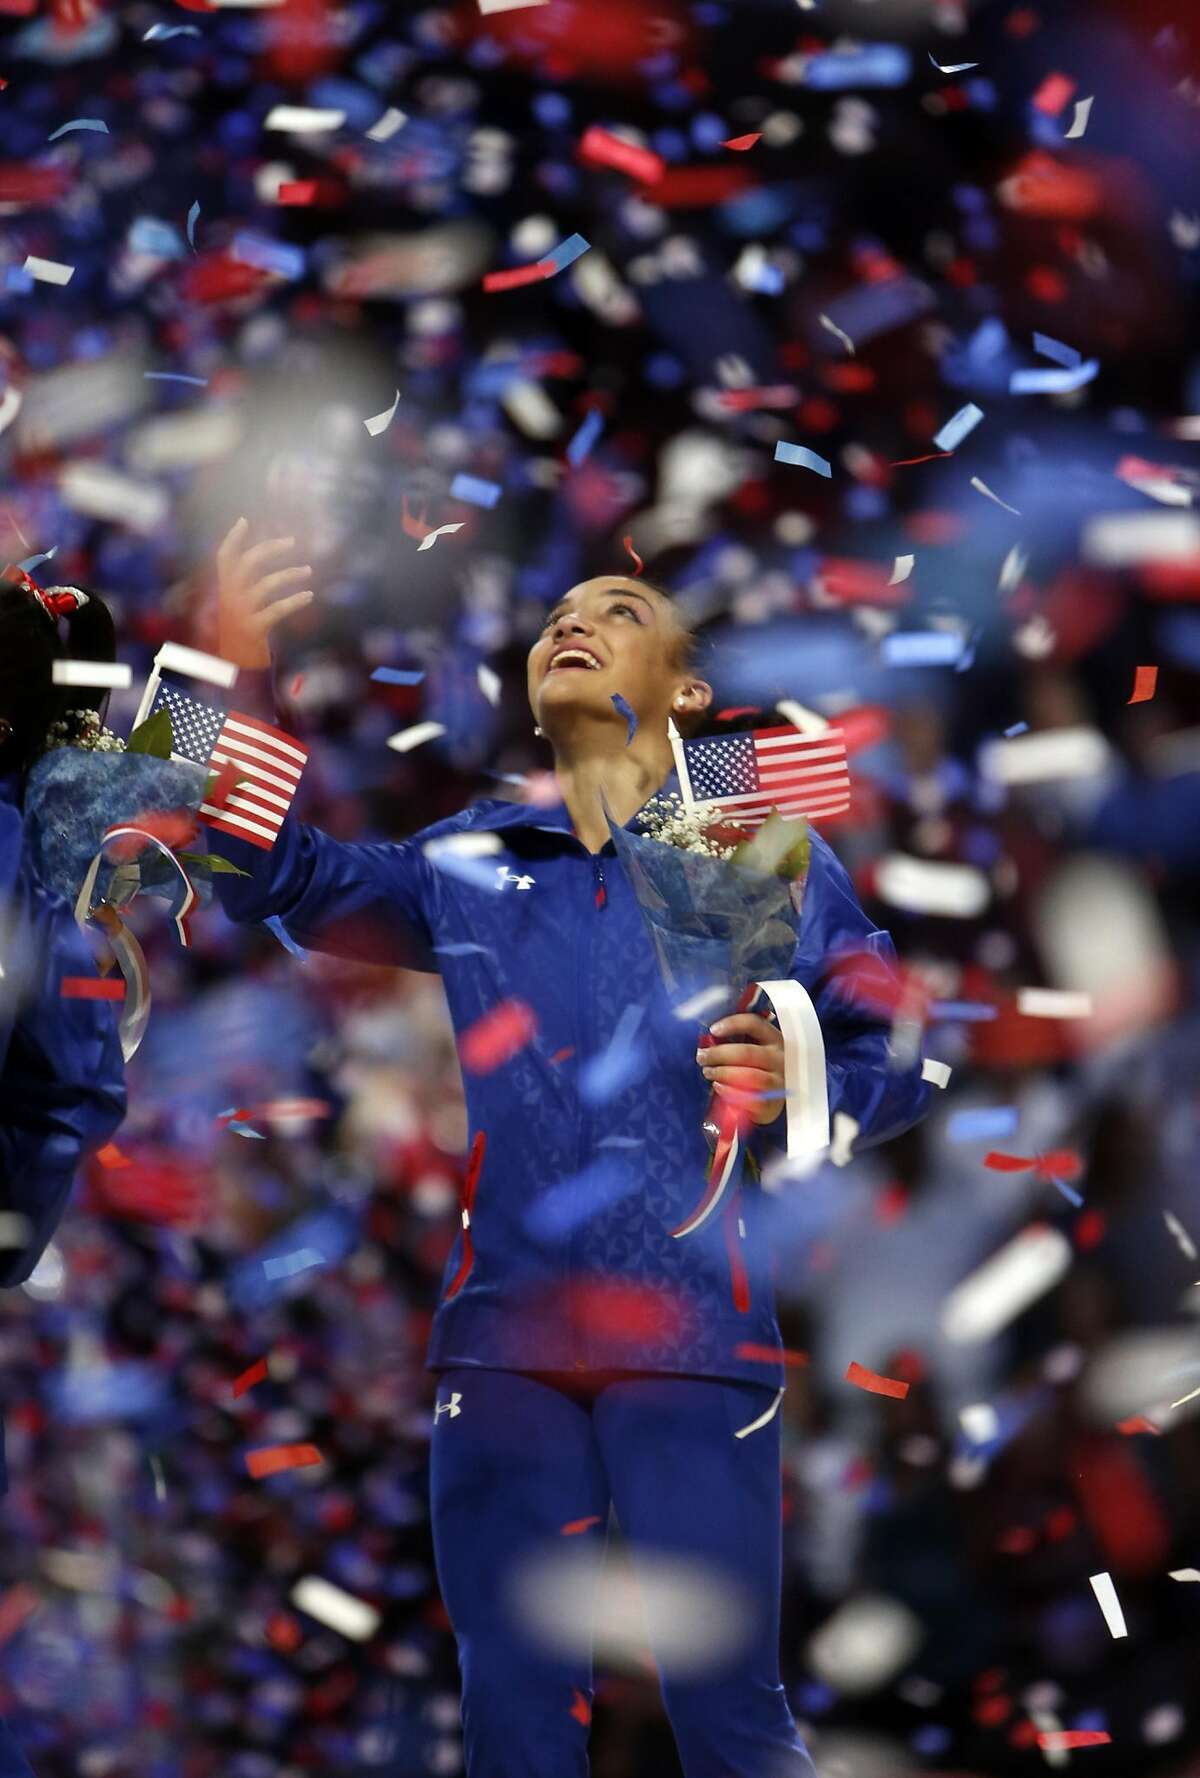 Laurie Hernandez celebrates making the 2016 U.S Olympic team after Day 2 of 2016 U.S. Olympic Trials for Women's Gymnastics at SAP Center in San Jose, Calif., on Sunday, July 10, 2016.